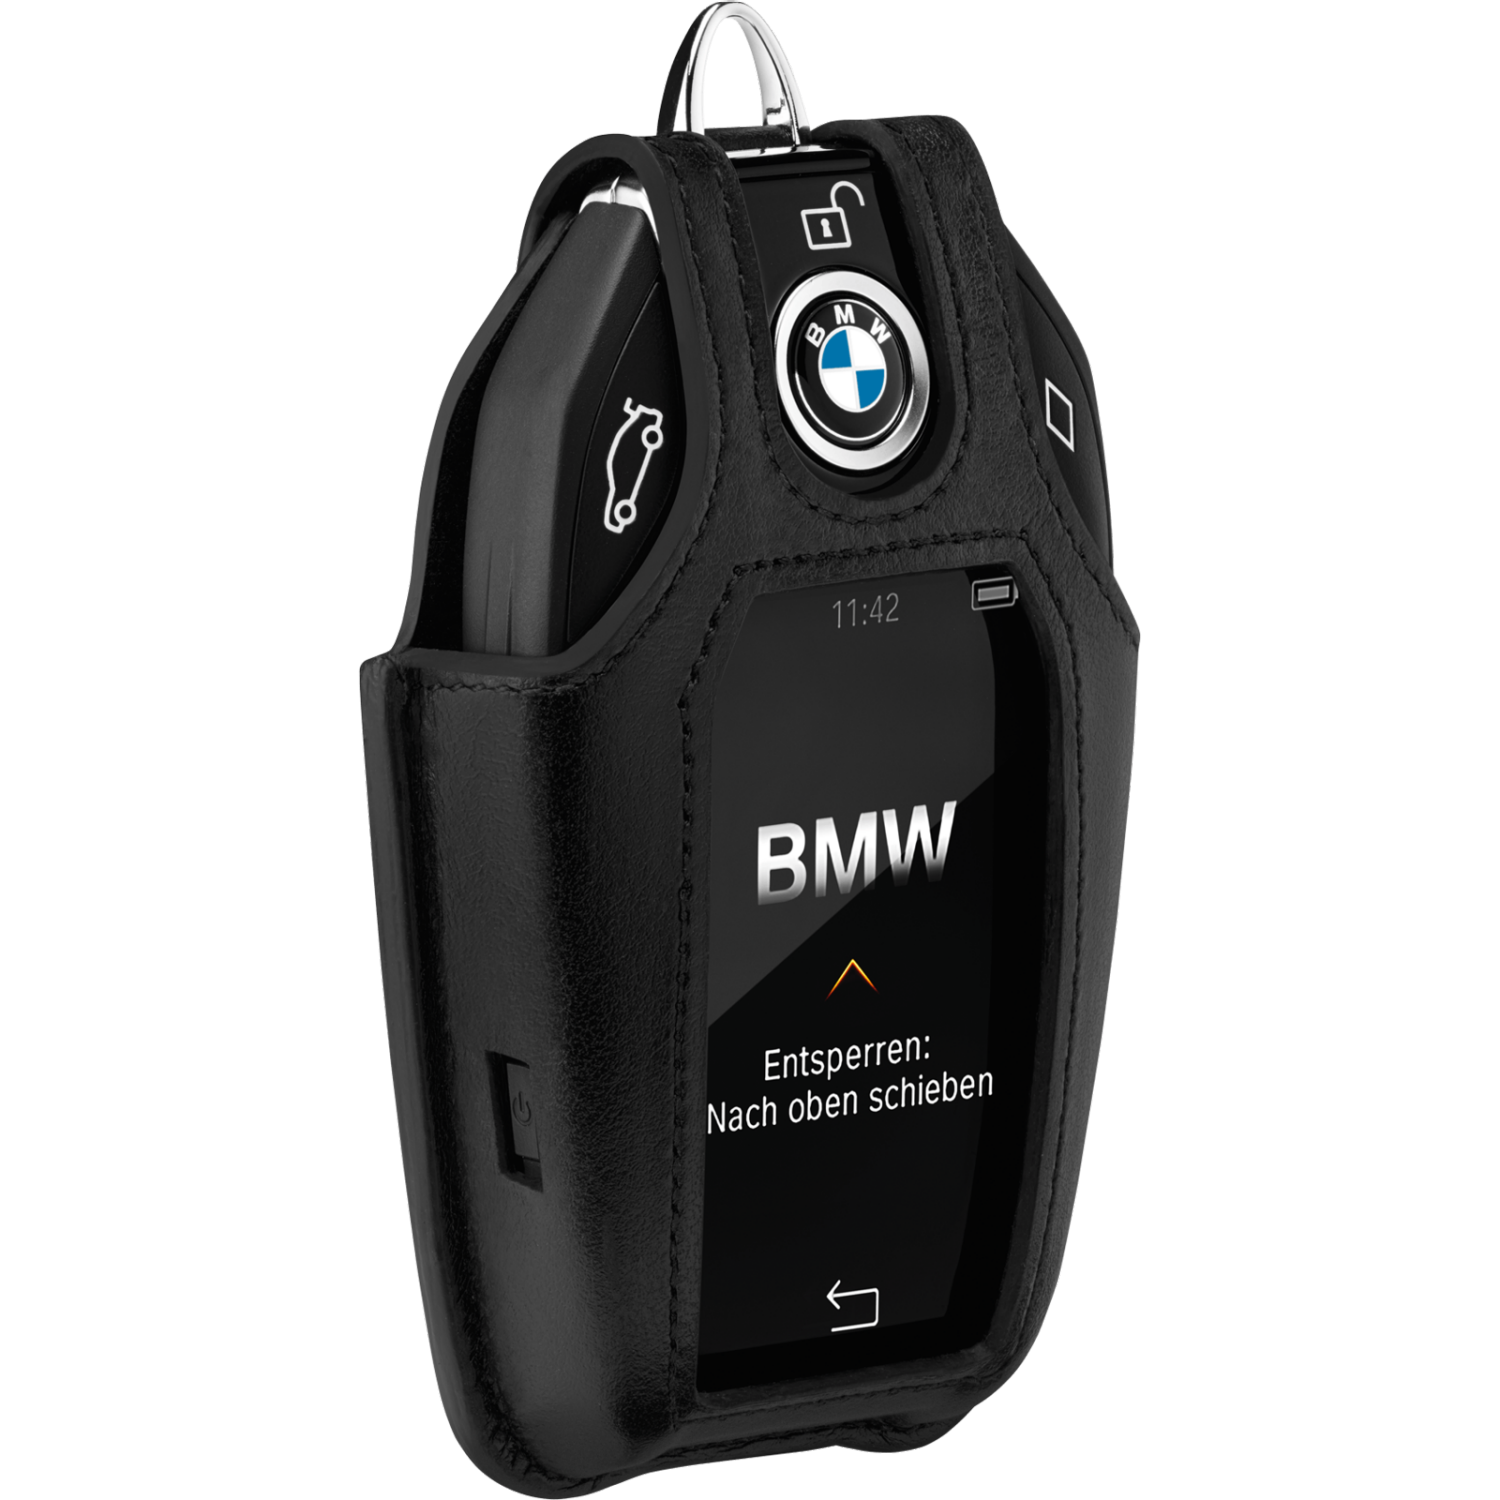 Montblanc For Bmw Key Sleeve Key Holder Bmw Key Bmw Bmw Key Case